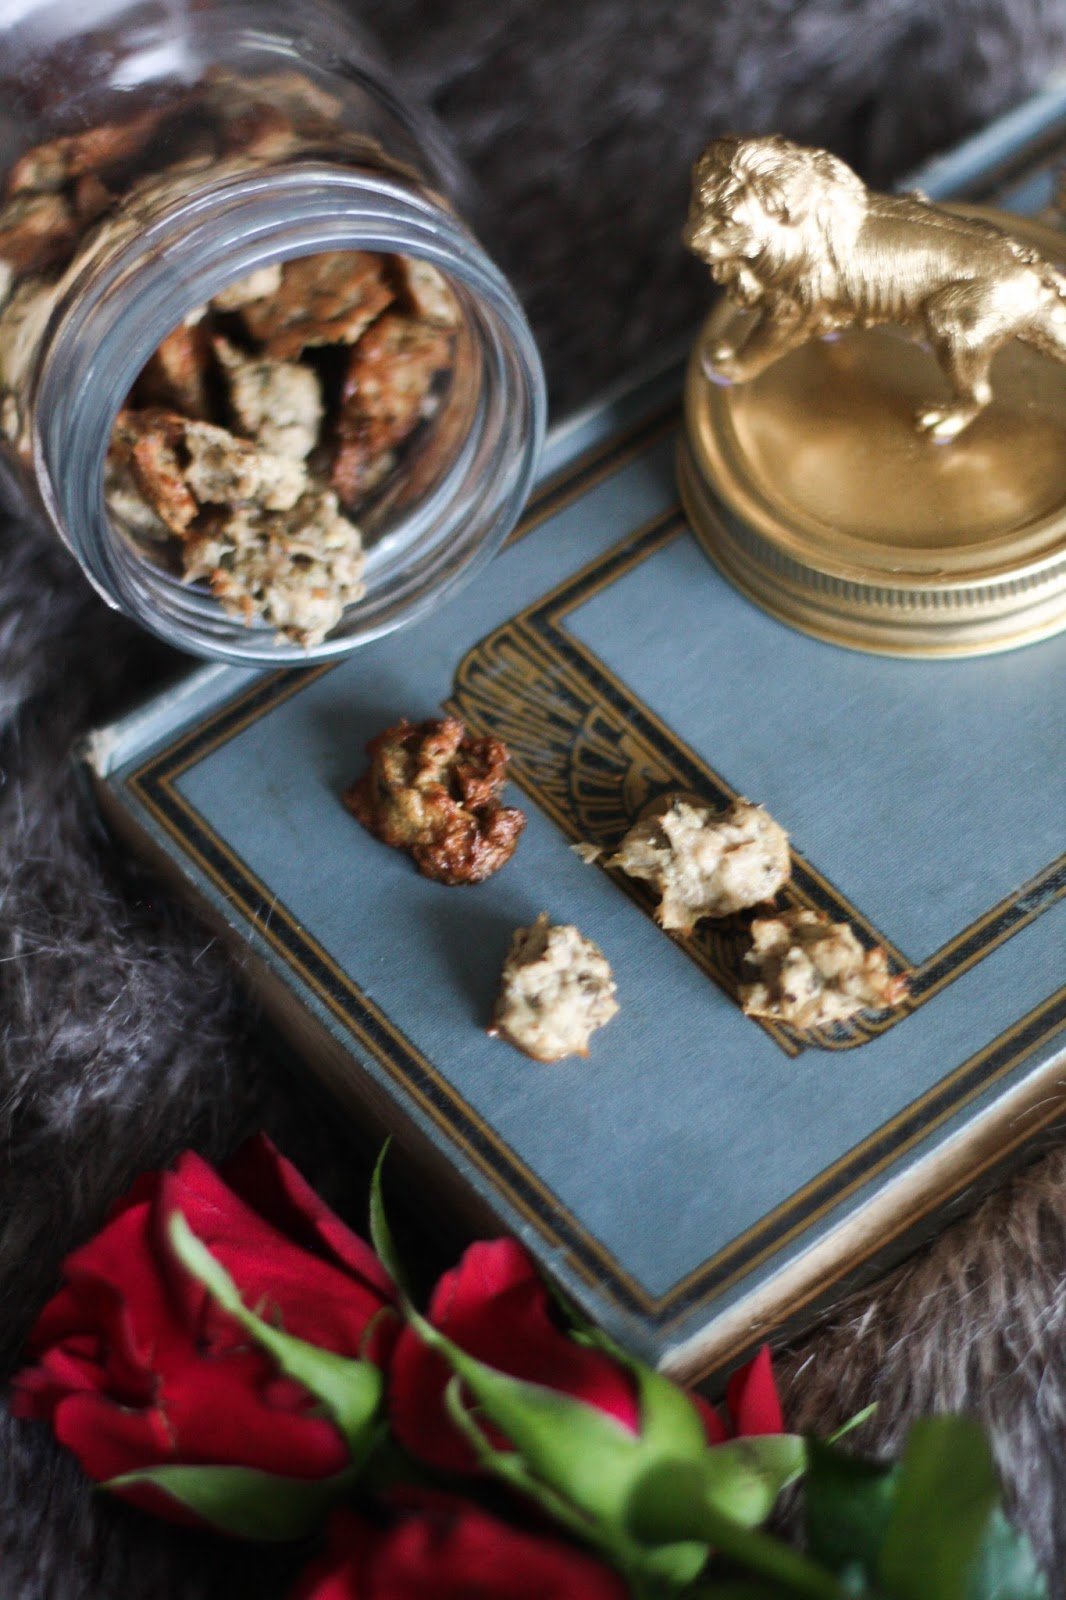 Homemade cat treats with tuna & catnip (+ DIY jar for cat treats)